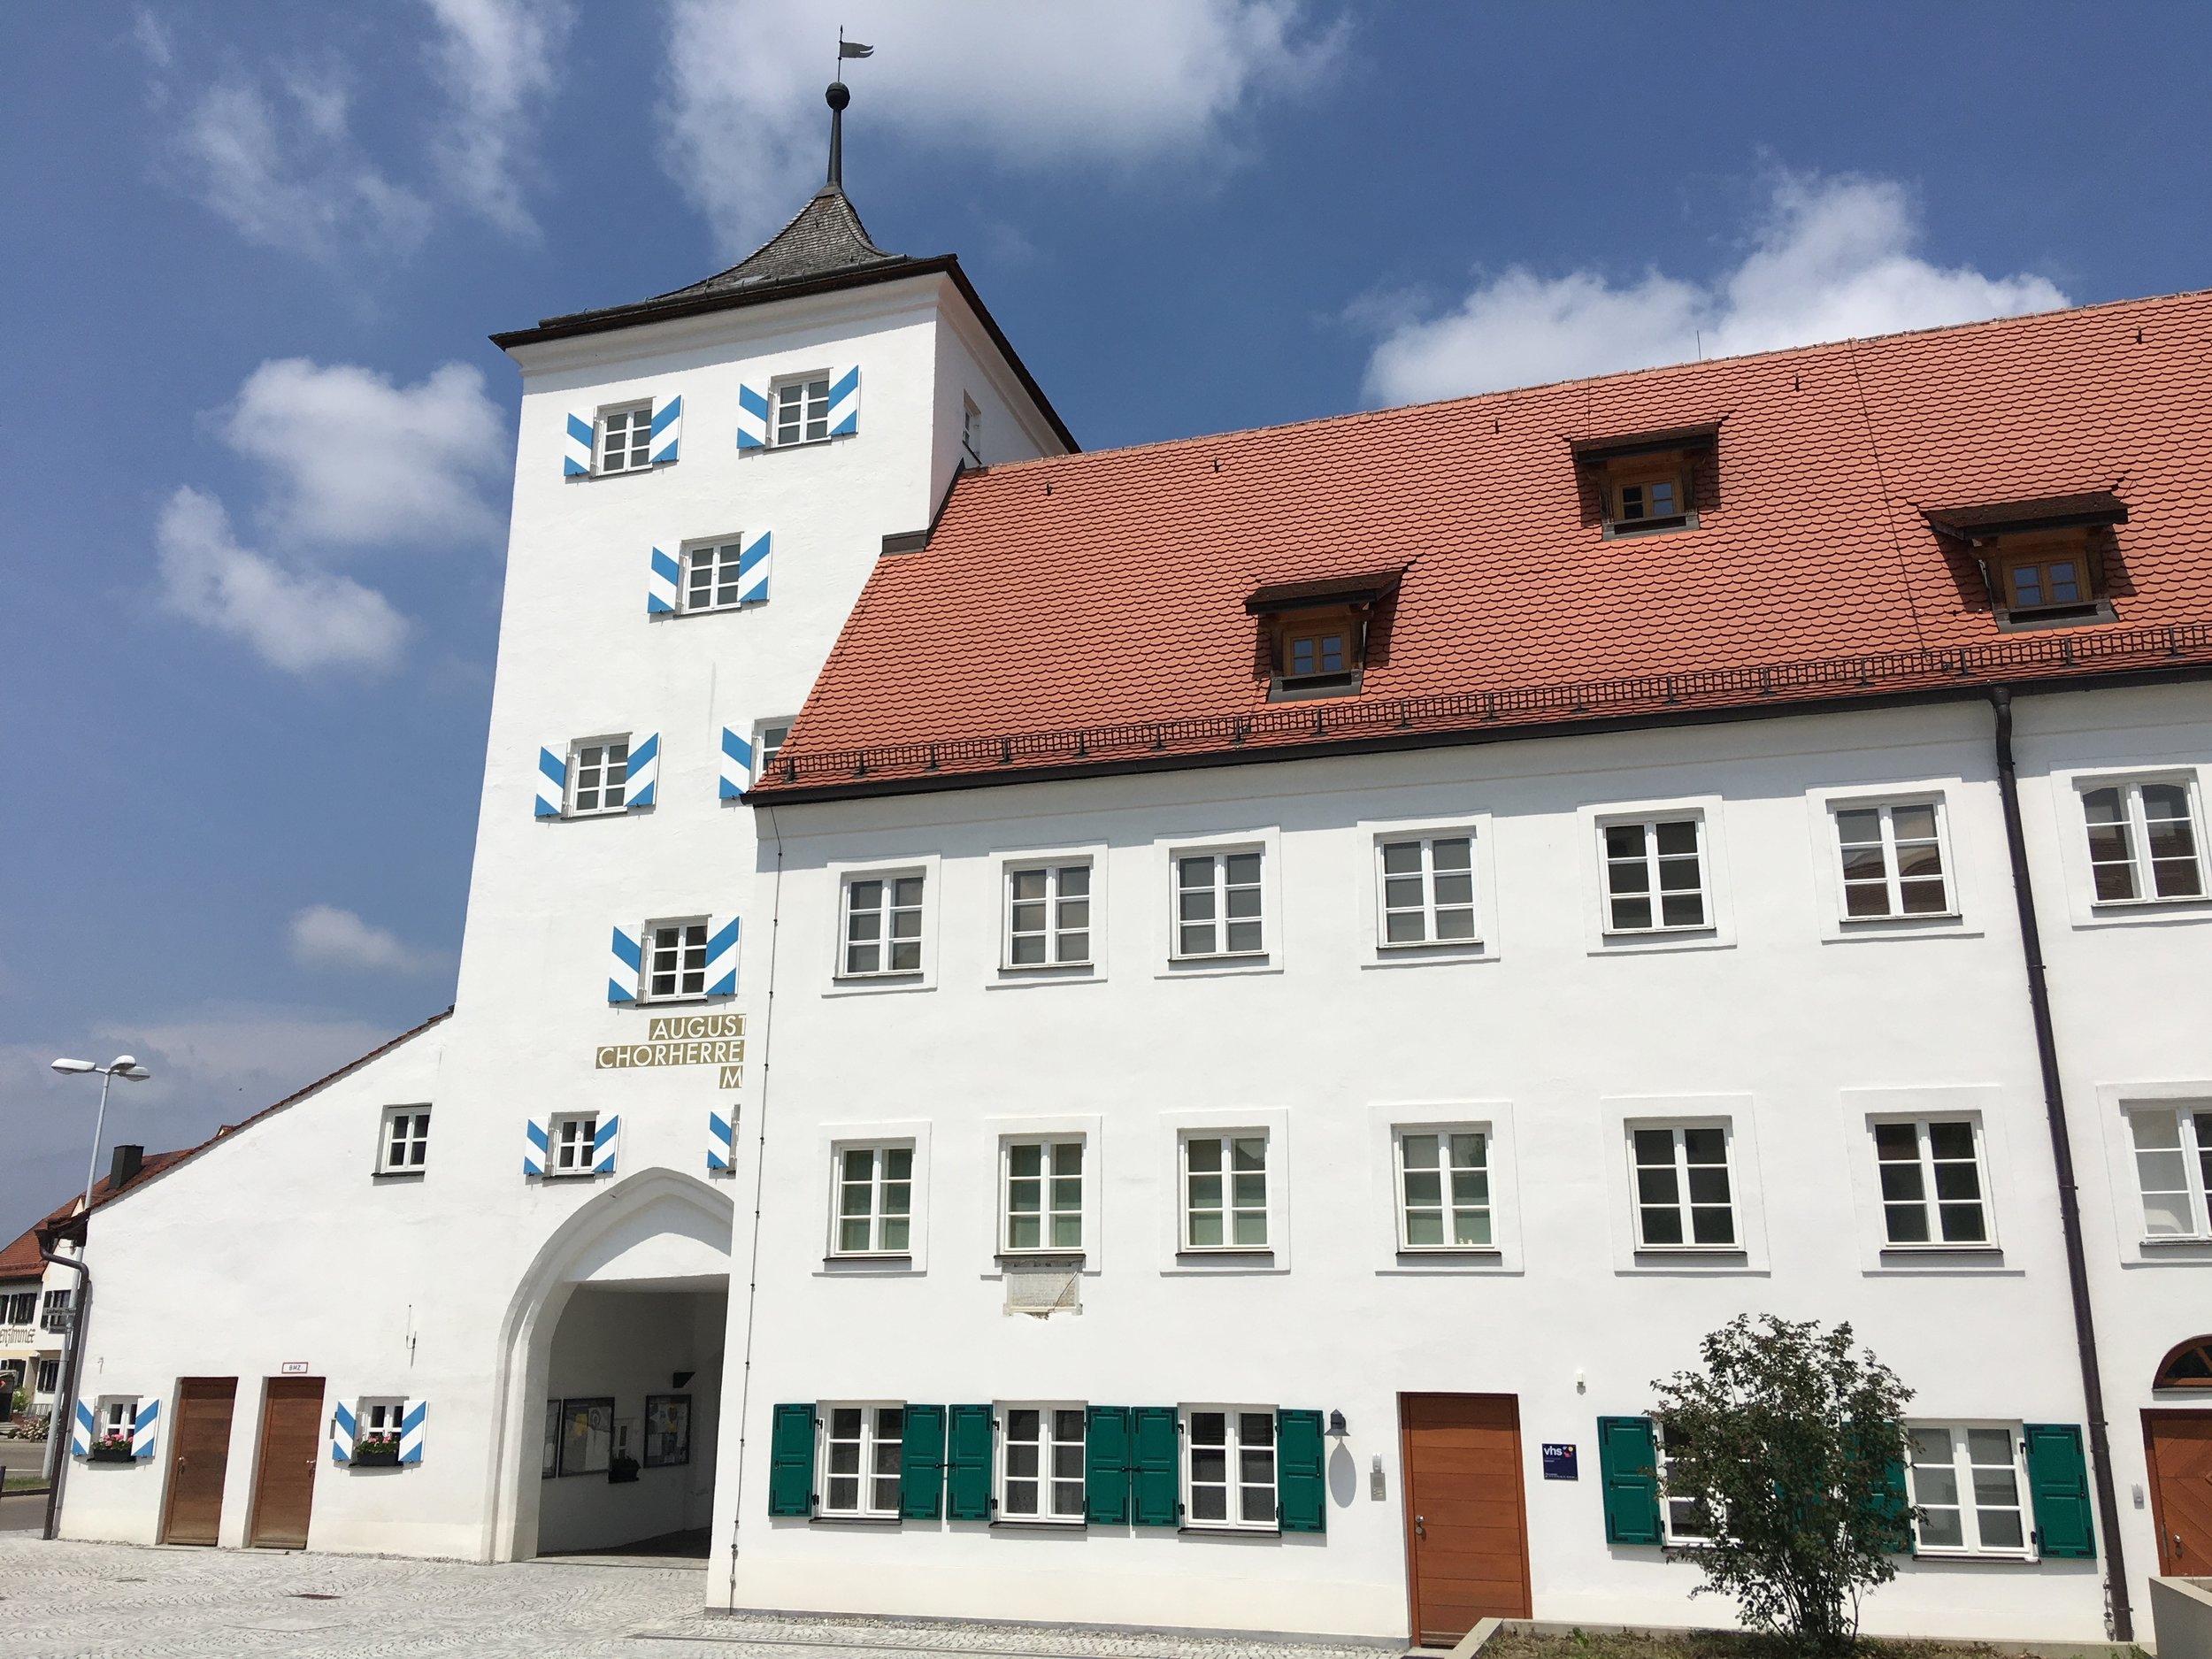 The convent at Kloster Indersdorf today. Photo: Rosie Whitehouse